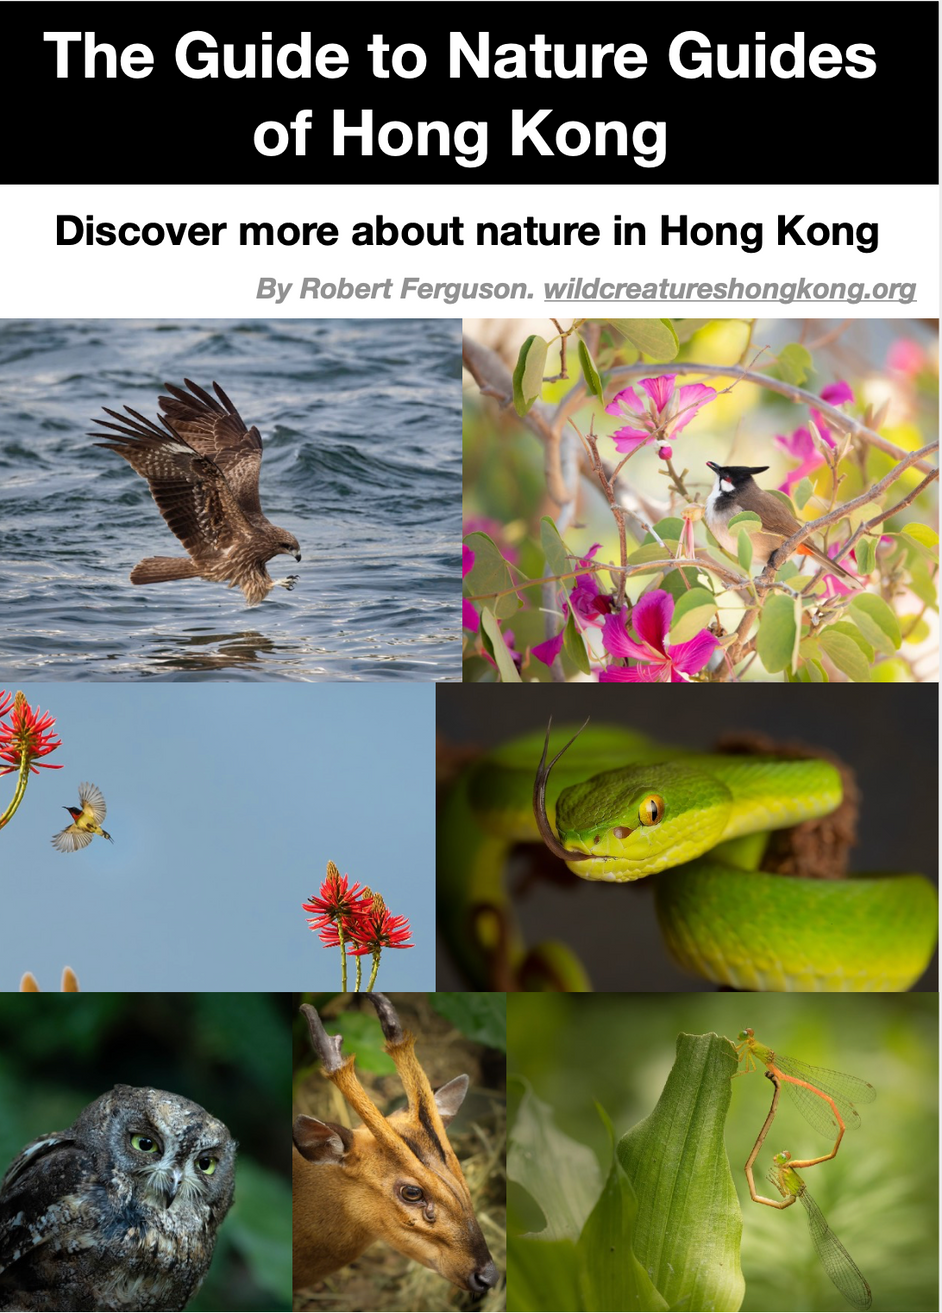 The Guide to Nature Guides of Hong Kong